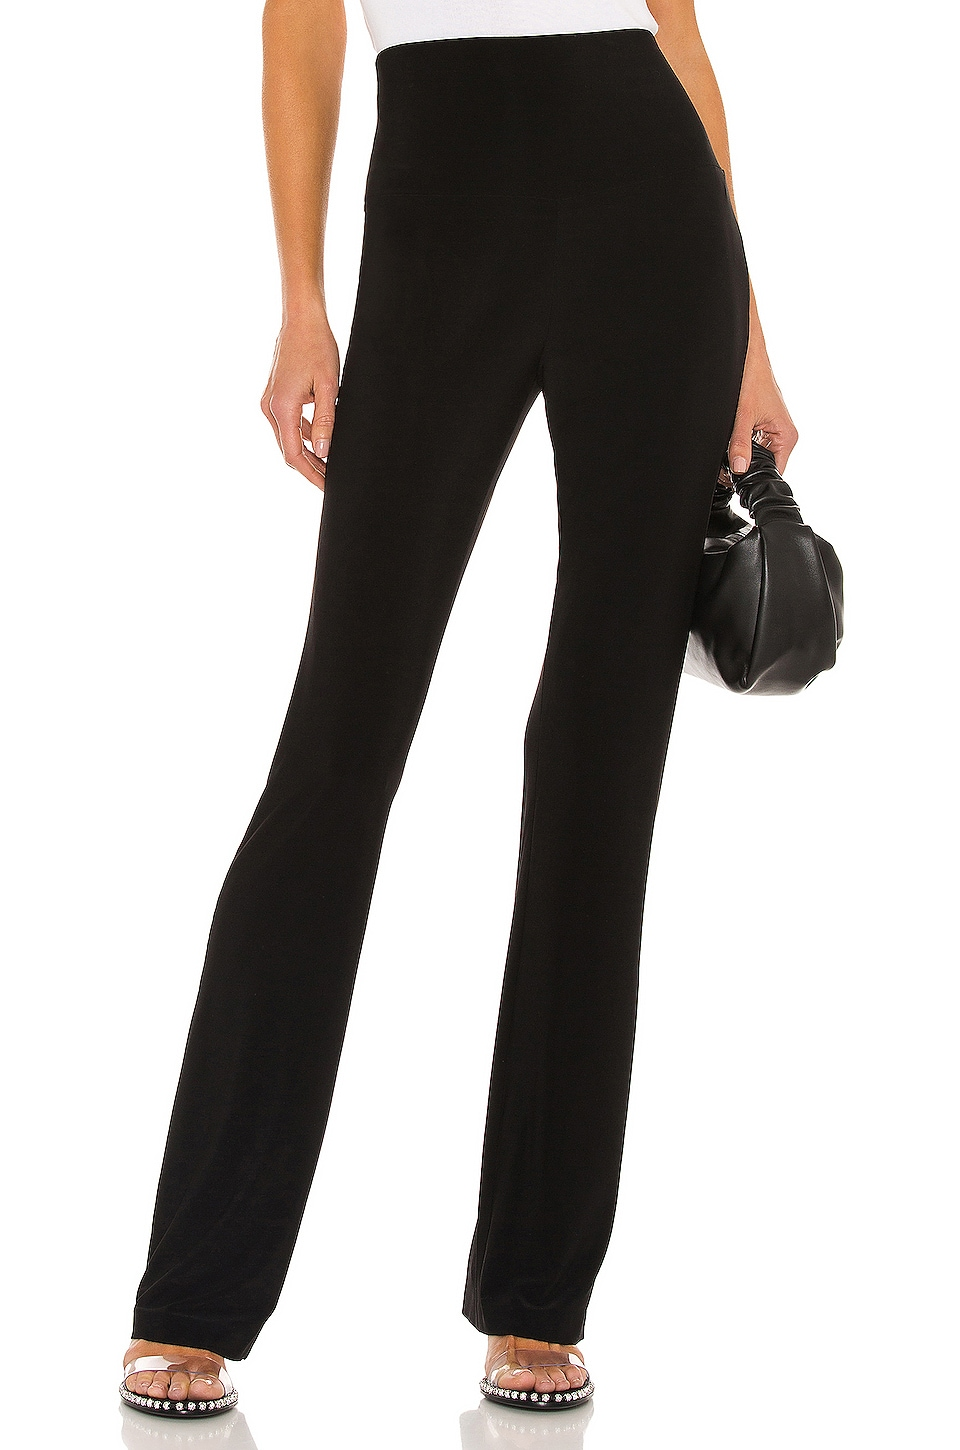 Norma Kamali Boot Pant in Black